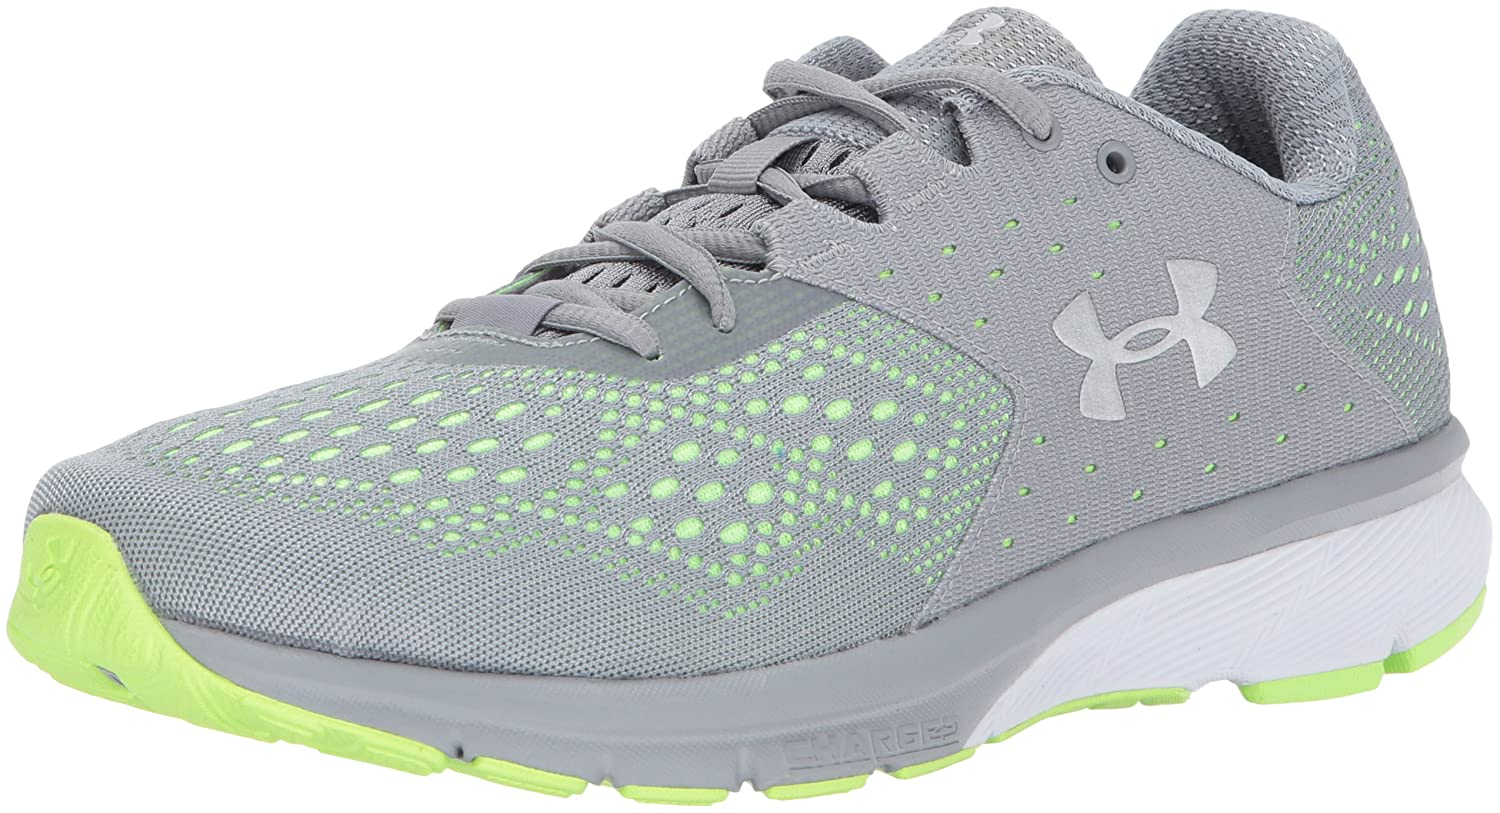 Under Armour Women's Charged Rebel Running Shoe B01MSYF0KS 6 M US|Steel (035)/Quirky Lime